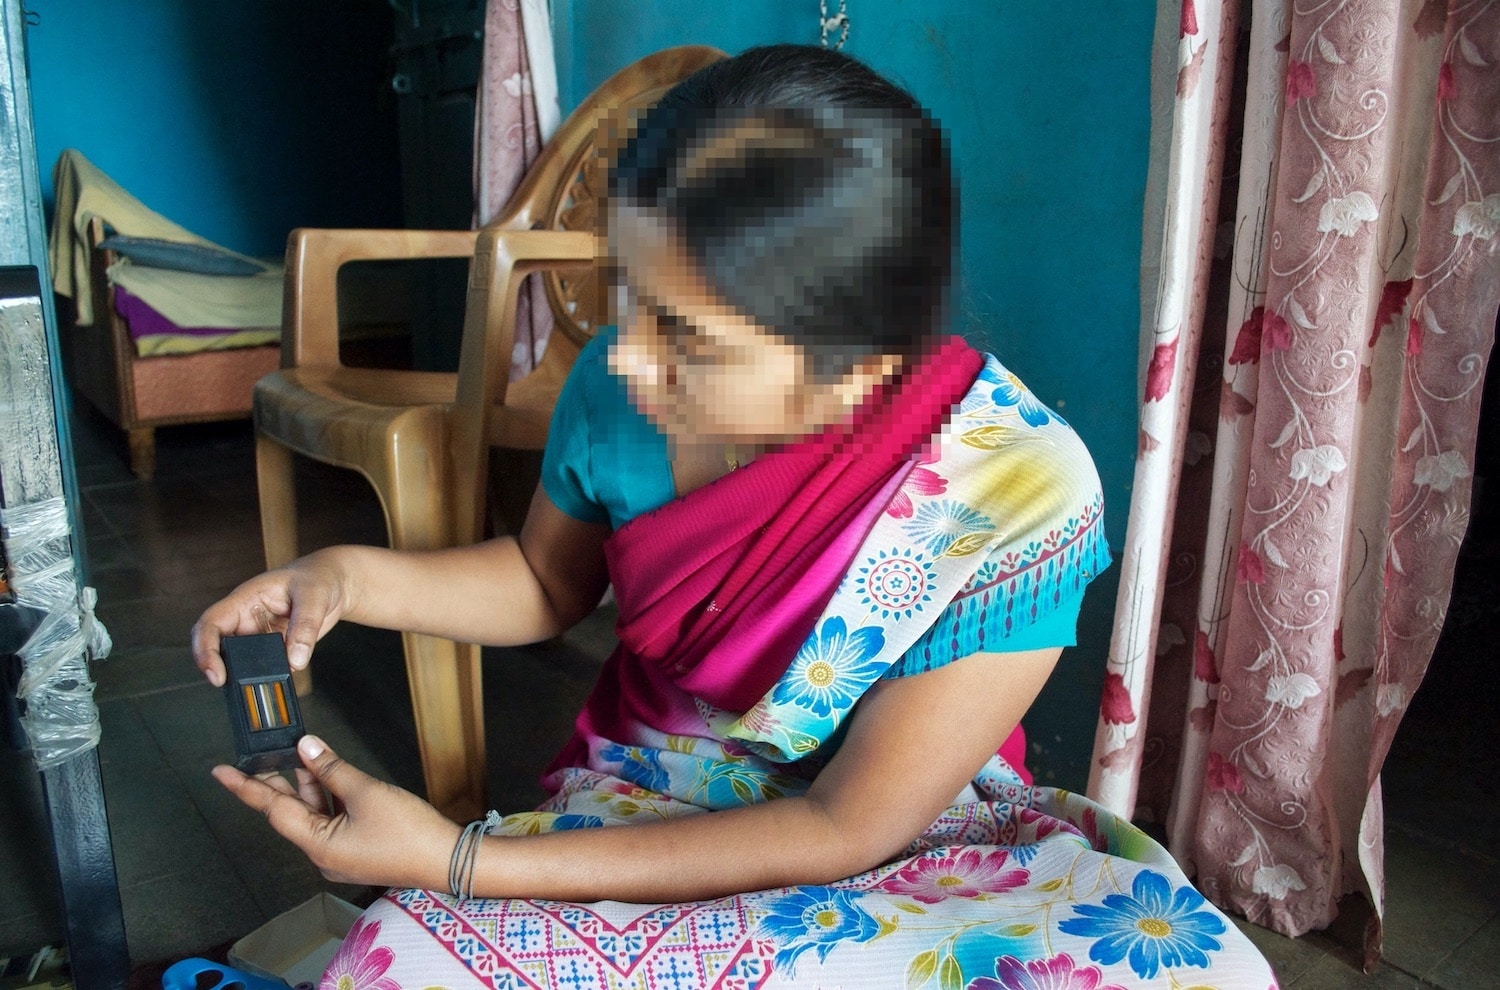 Redesigning an anaemia detection device for rural India